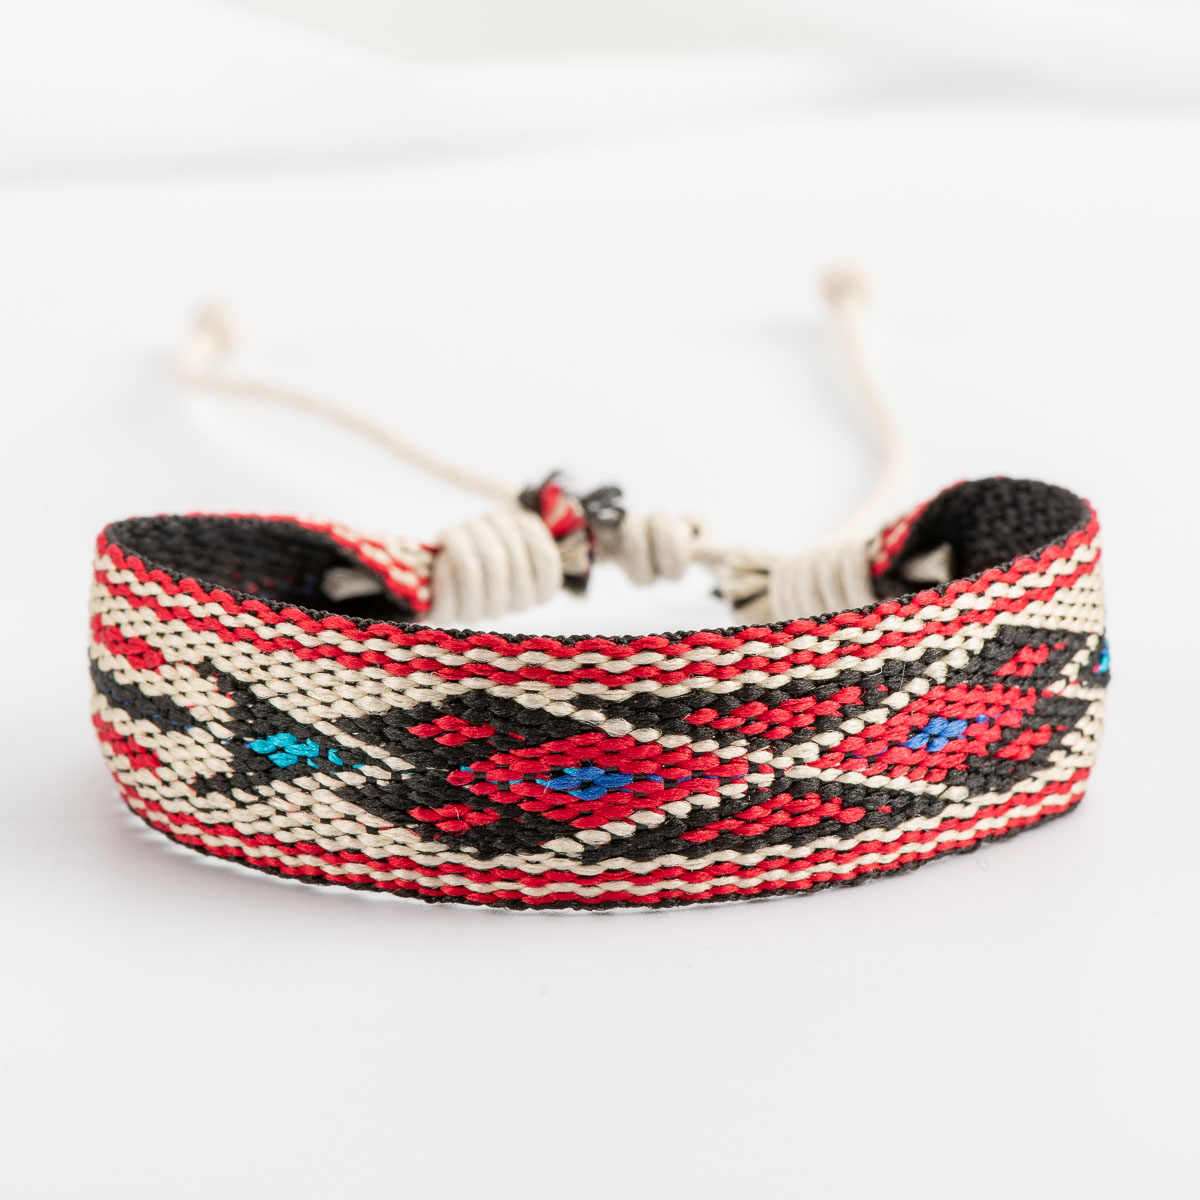 Hand Made Rope Bracelet retro traditional boondoggle Necklaces Vintage Charms Rope Bracelets #HY425